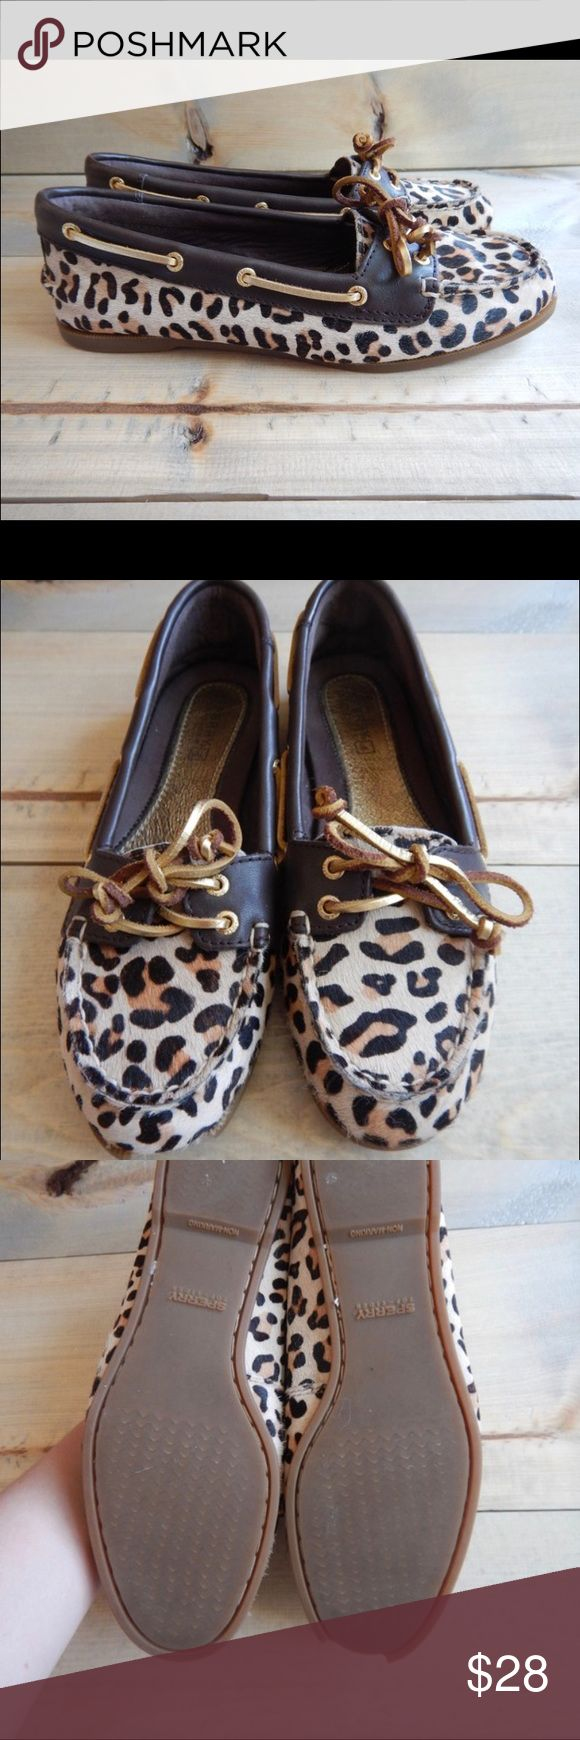 Leopard Sperry Top siders Lamb skin Sperry Top Siders with leopard print  Good condition but flawed! (price reflects) Retail for $70 Come in the original box   FLAW Seen in second photo  Part of the rubber in the front is missing  Please message me with any questions Sperry Shoes Flats & Loafers